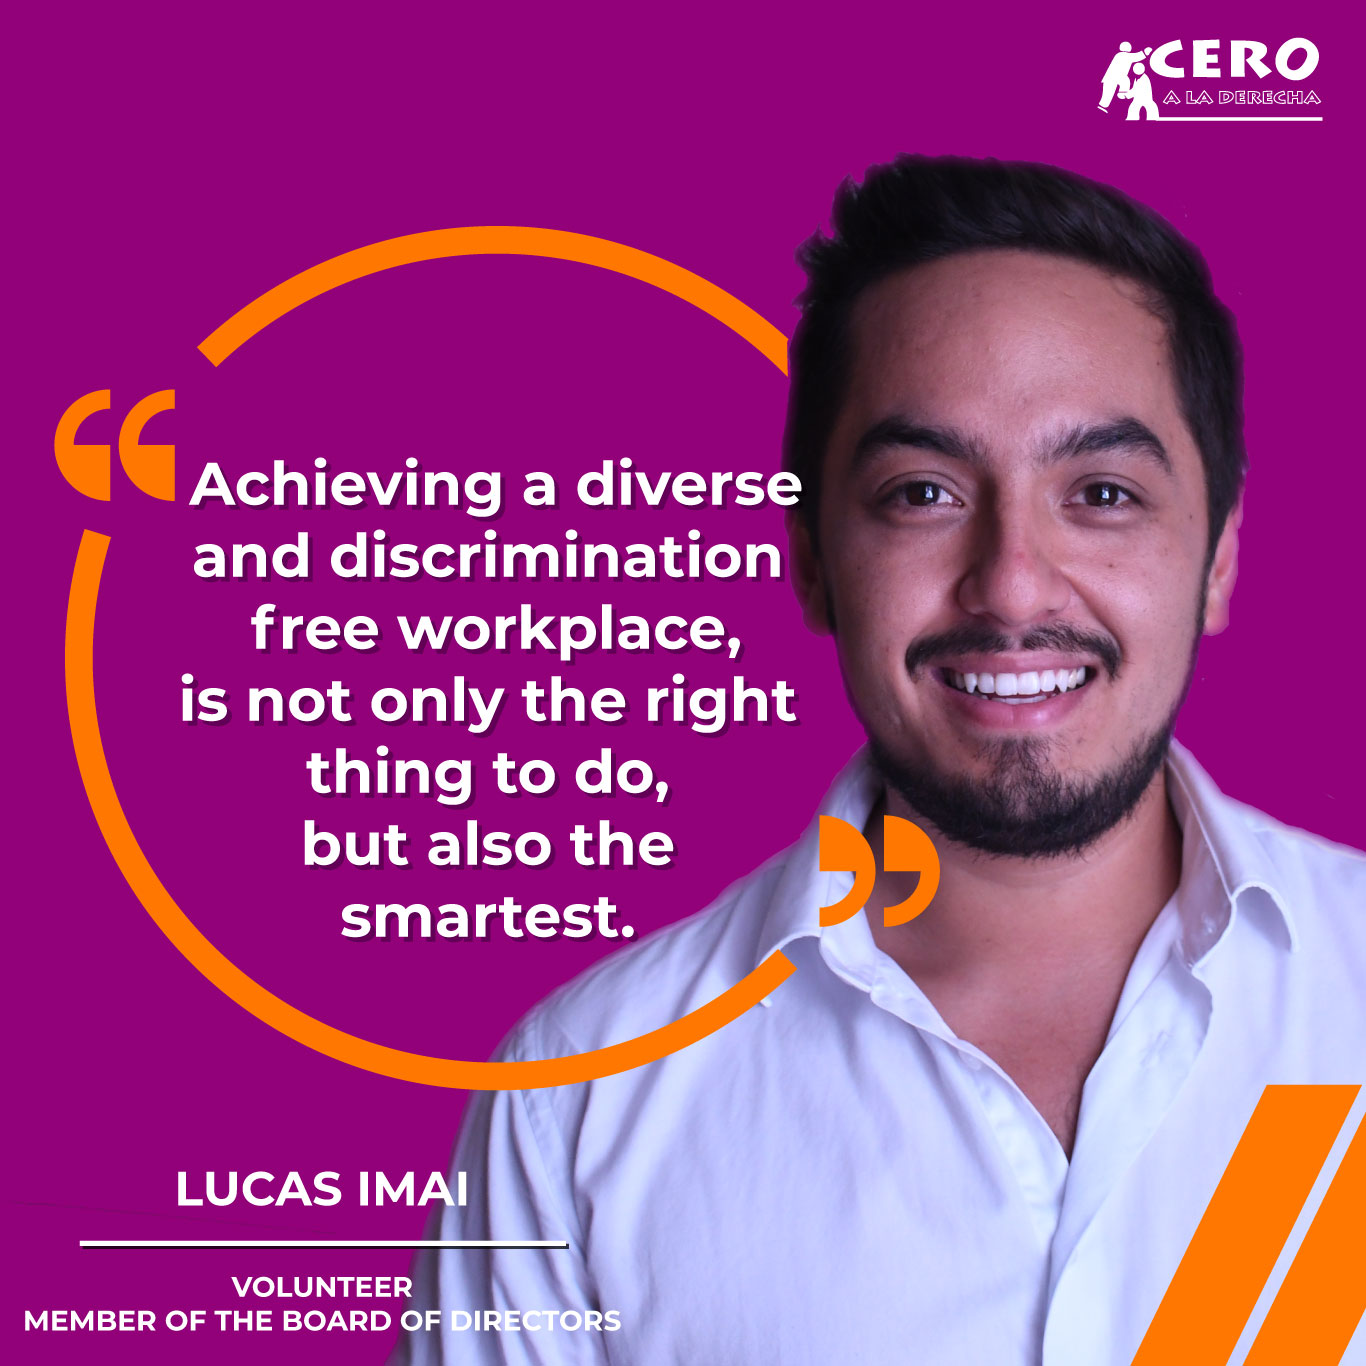 Achieving a diverse and discrimination free work environment, is not only the right thing to do, but